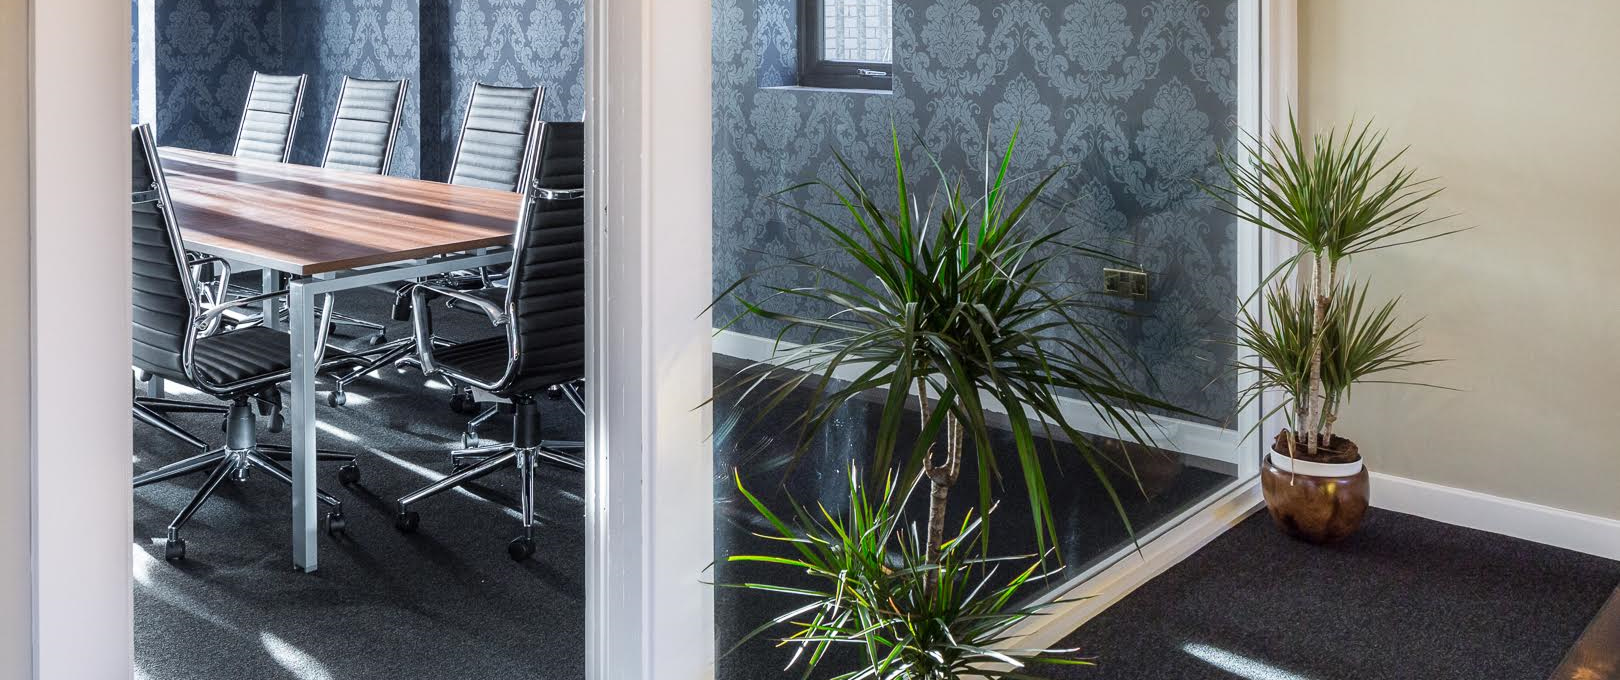 offices-for-rent-stockport